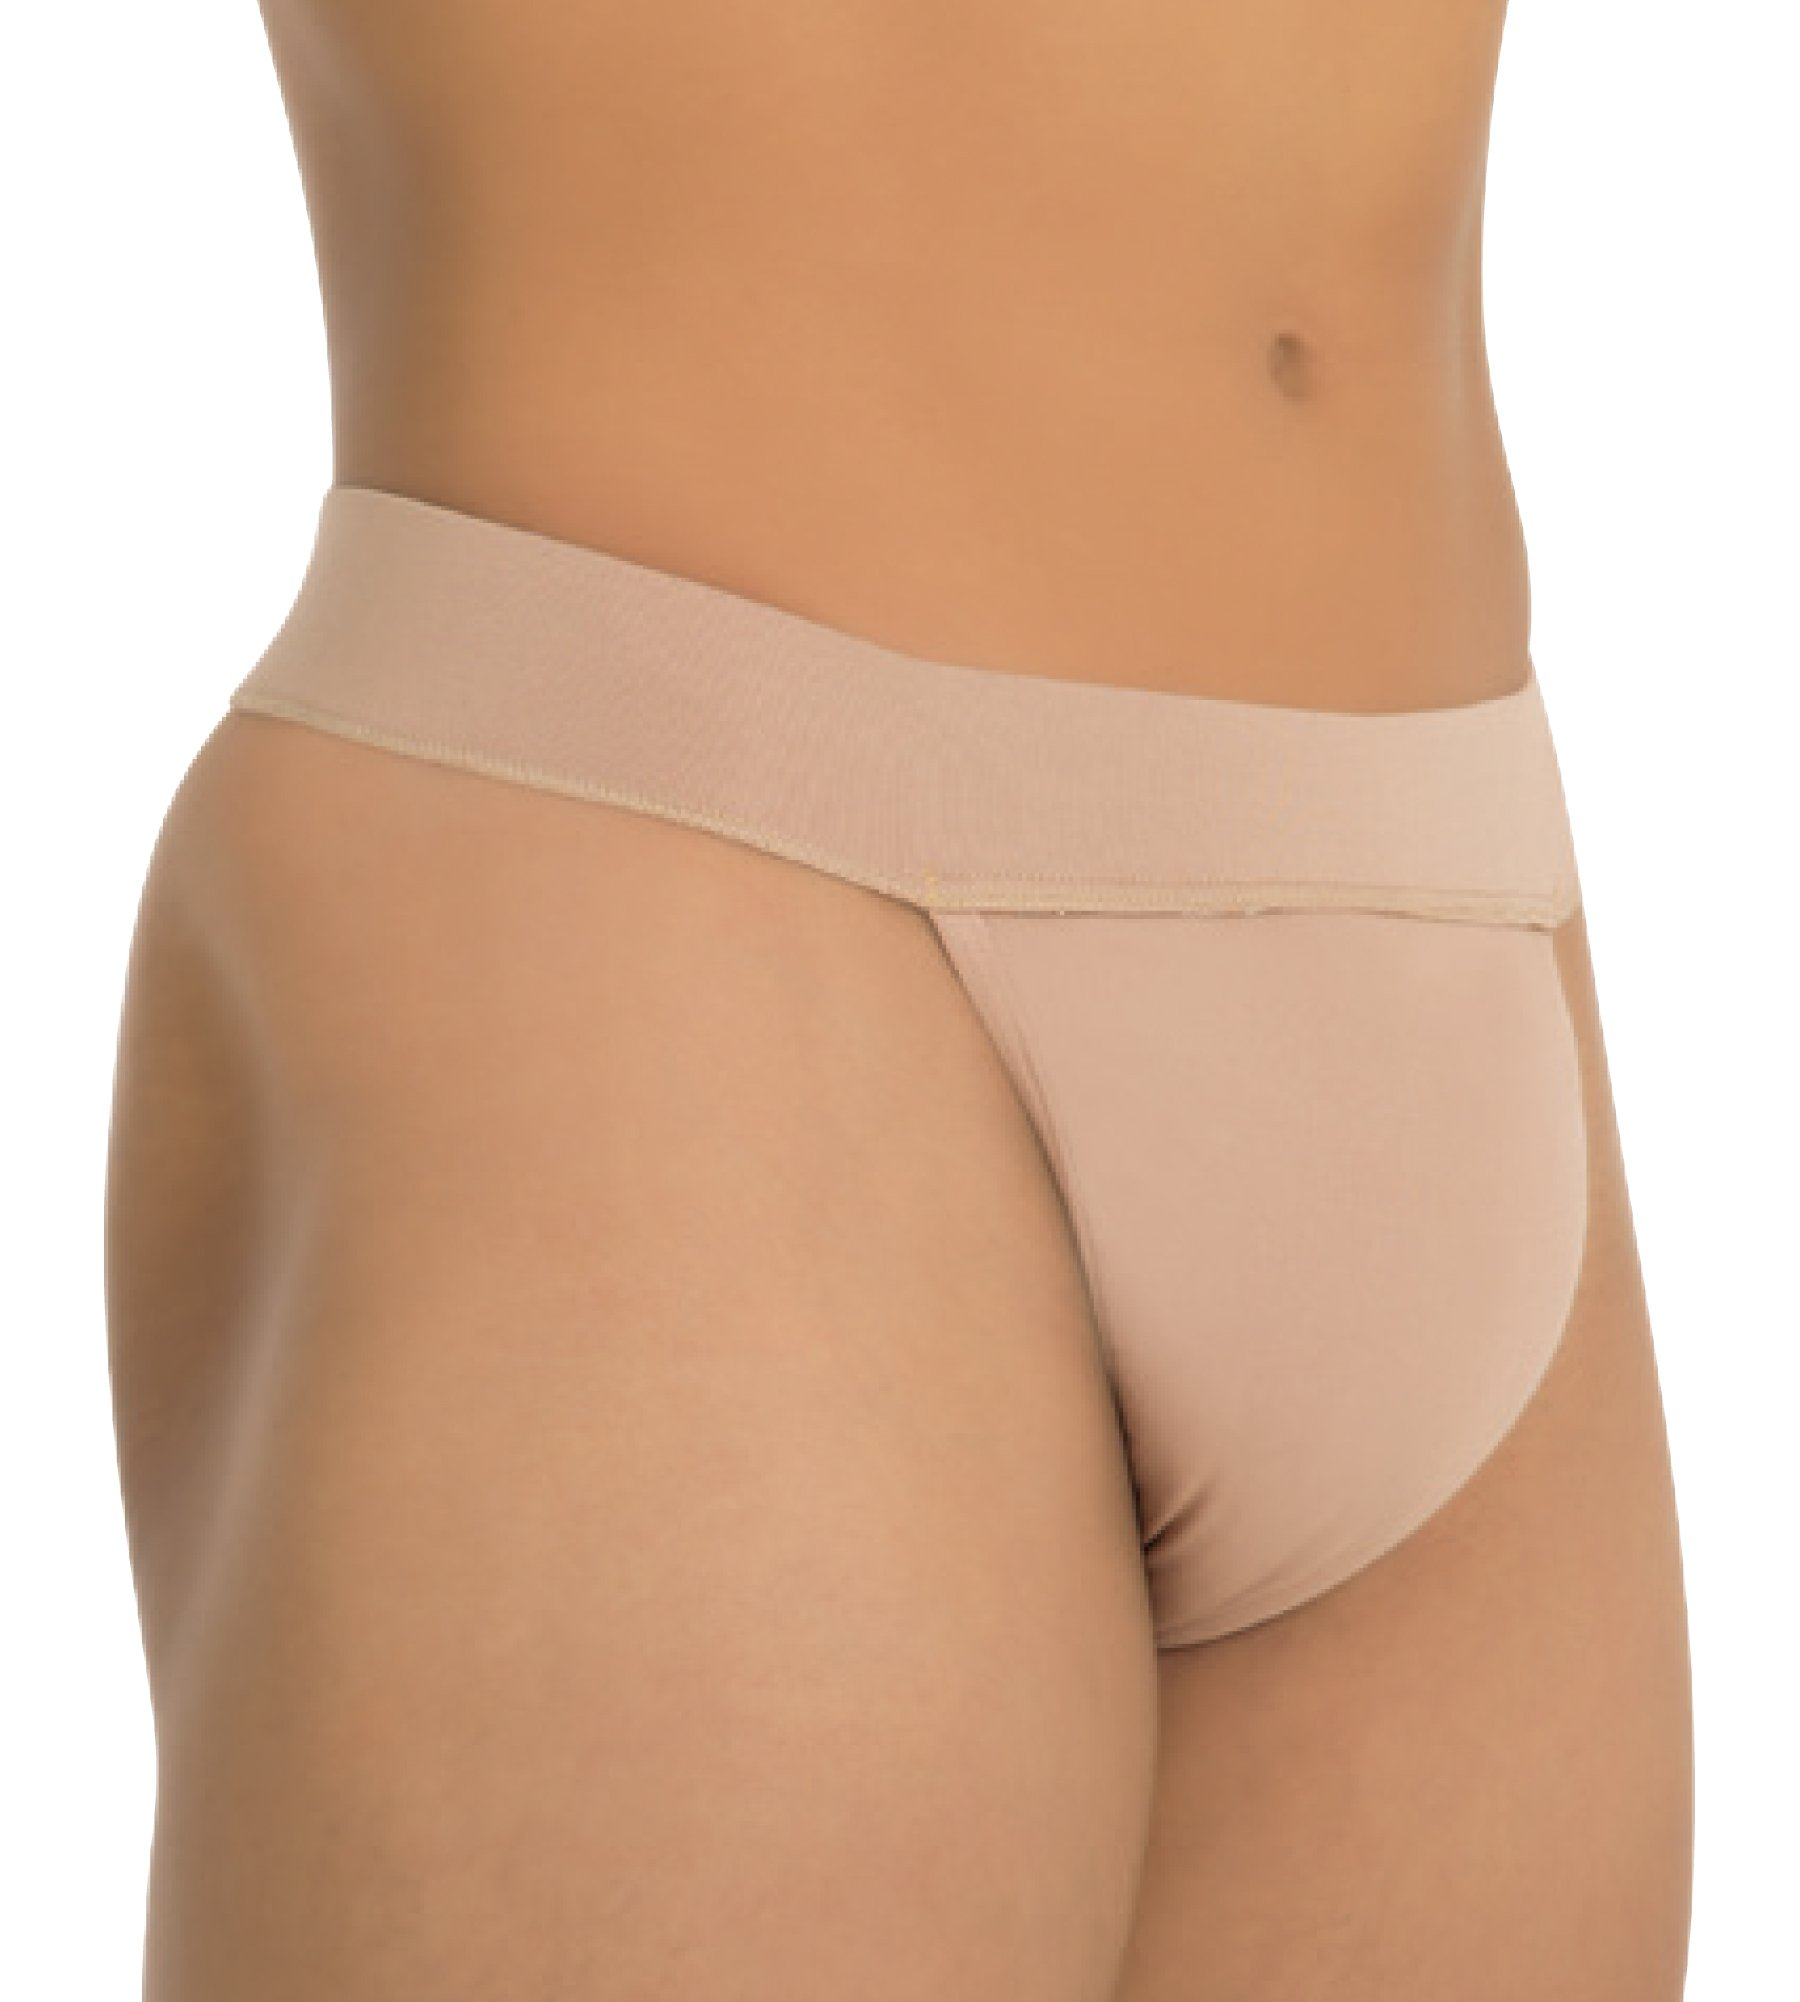 Body Wrappers Thong Support Dance Belt M003